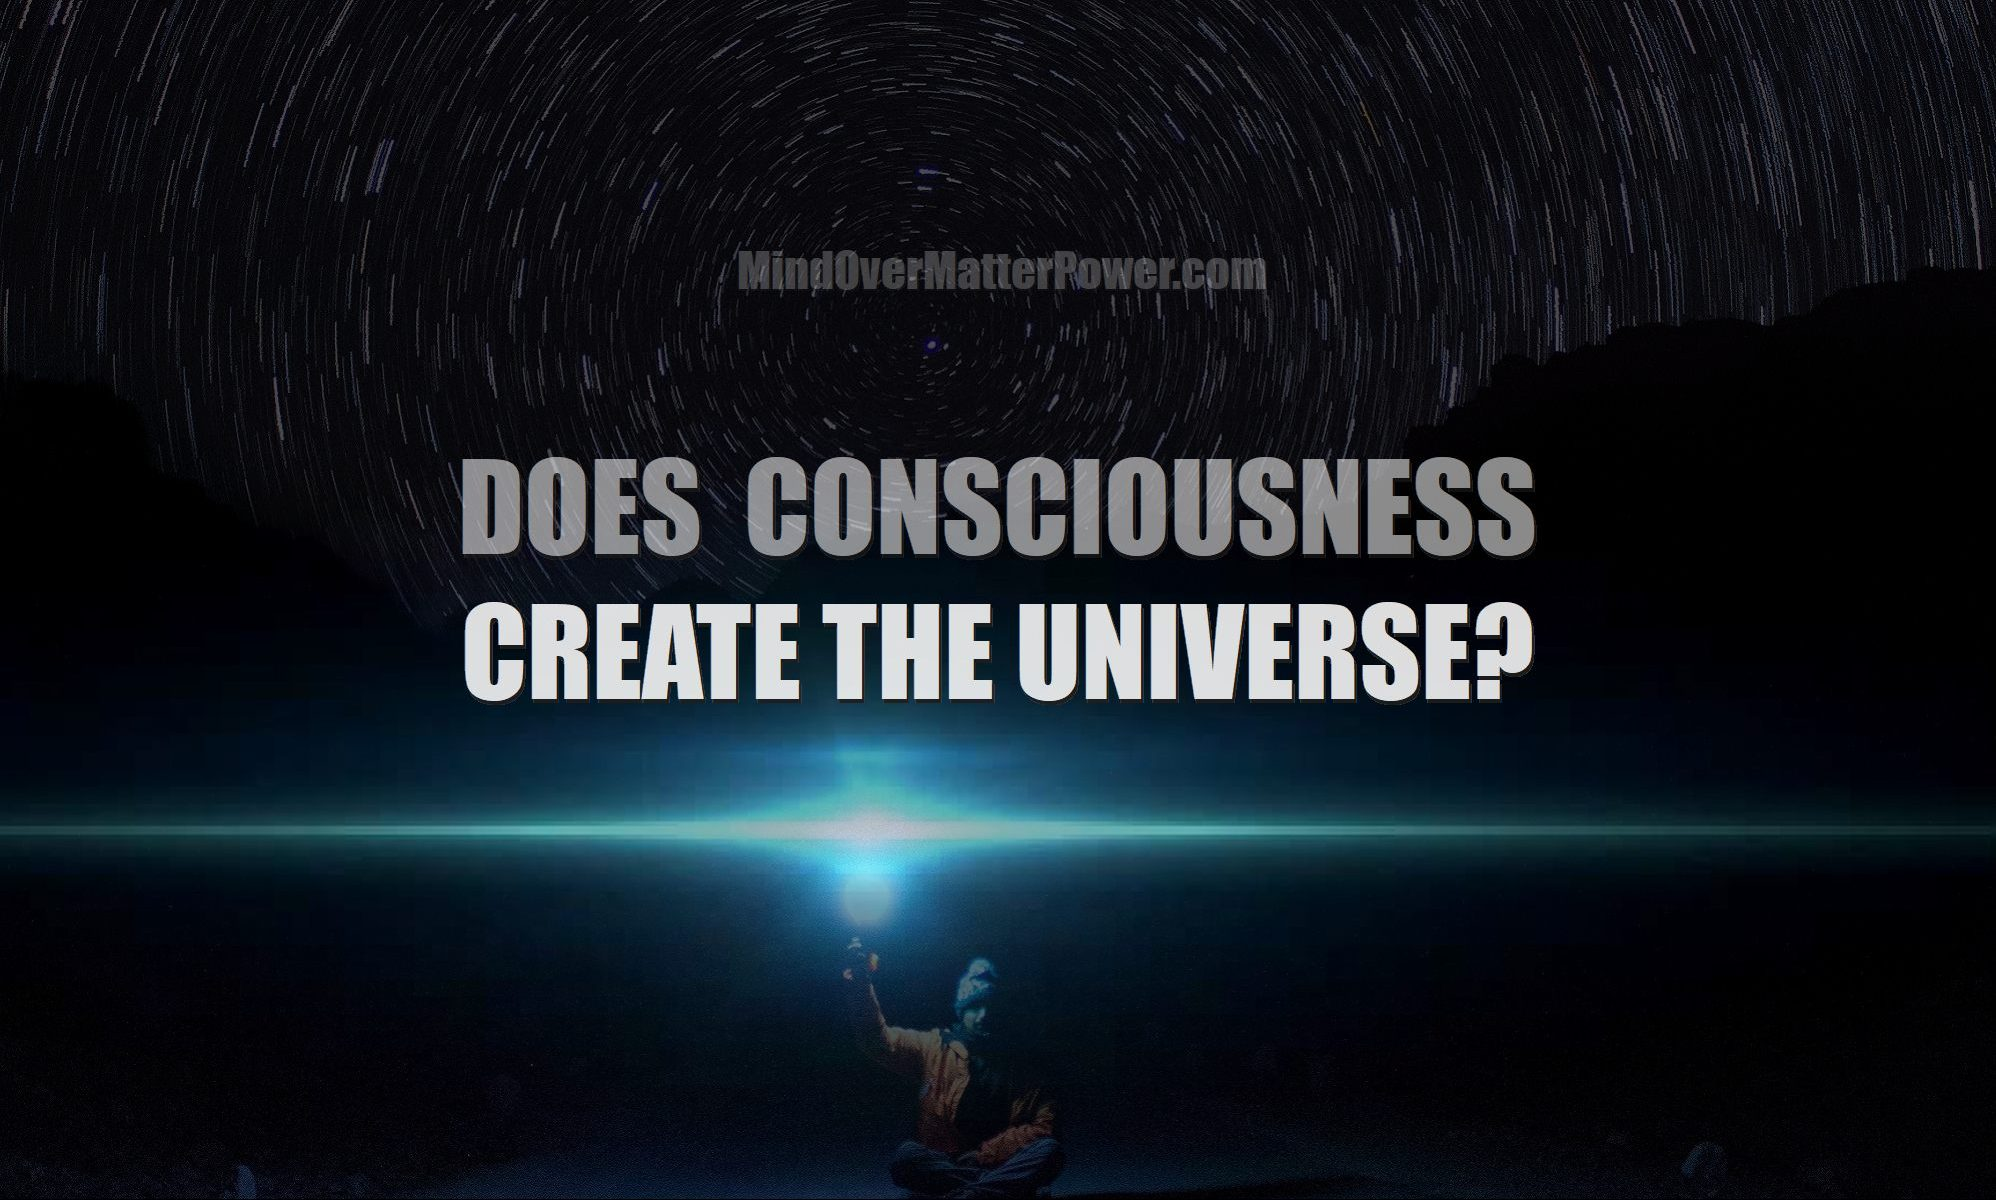 what-is-reality-made-of-are-objects-solid-real-or-energy-does-consciousness-create-the-physical-universe